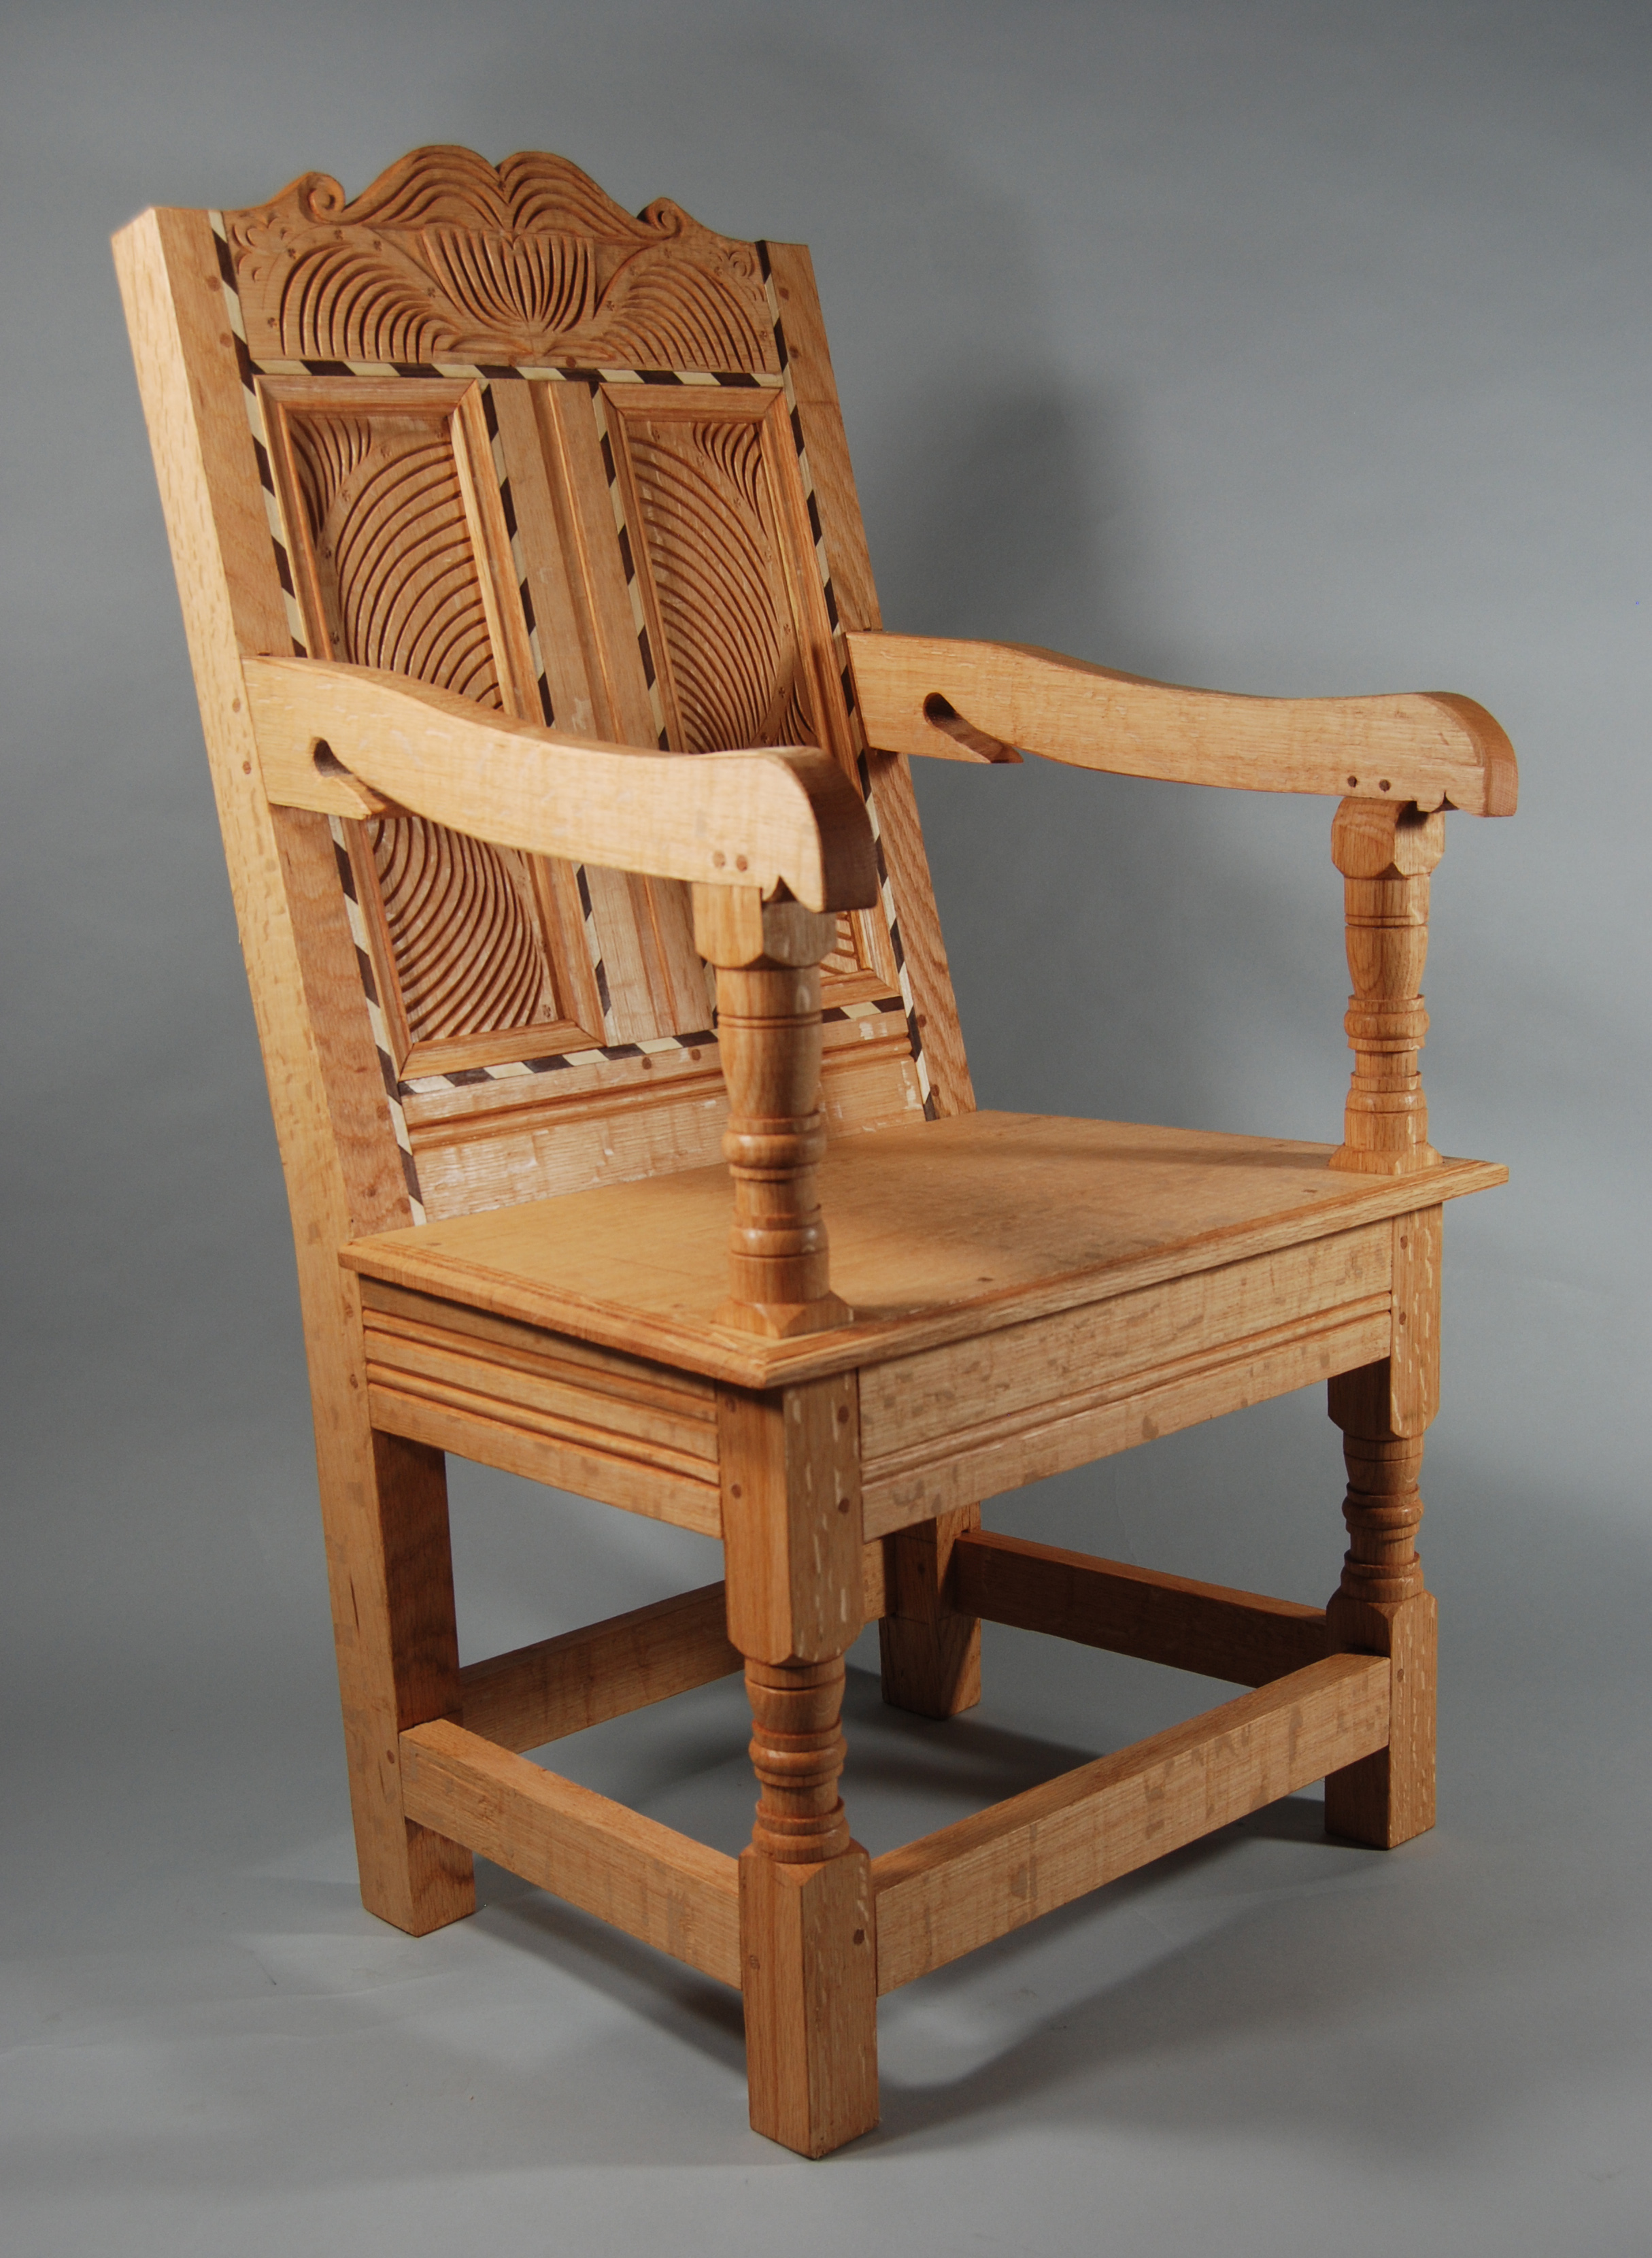 Wooden chair front view - Lincoln Chair Red Oak Walnut Maple